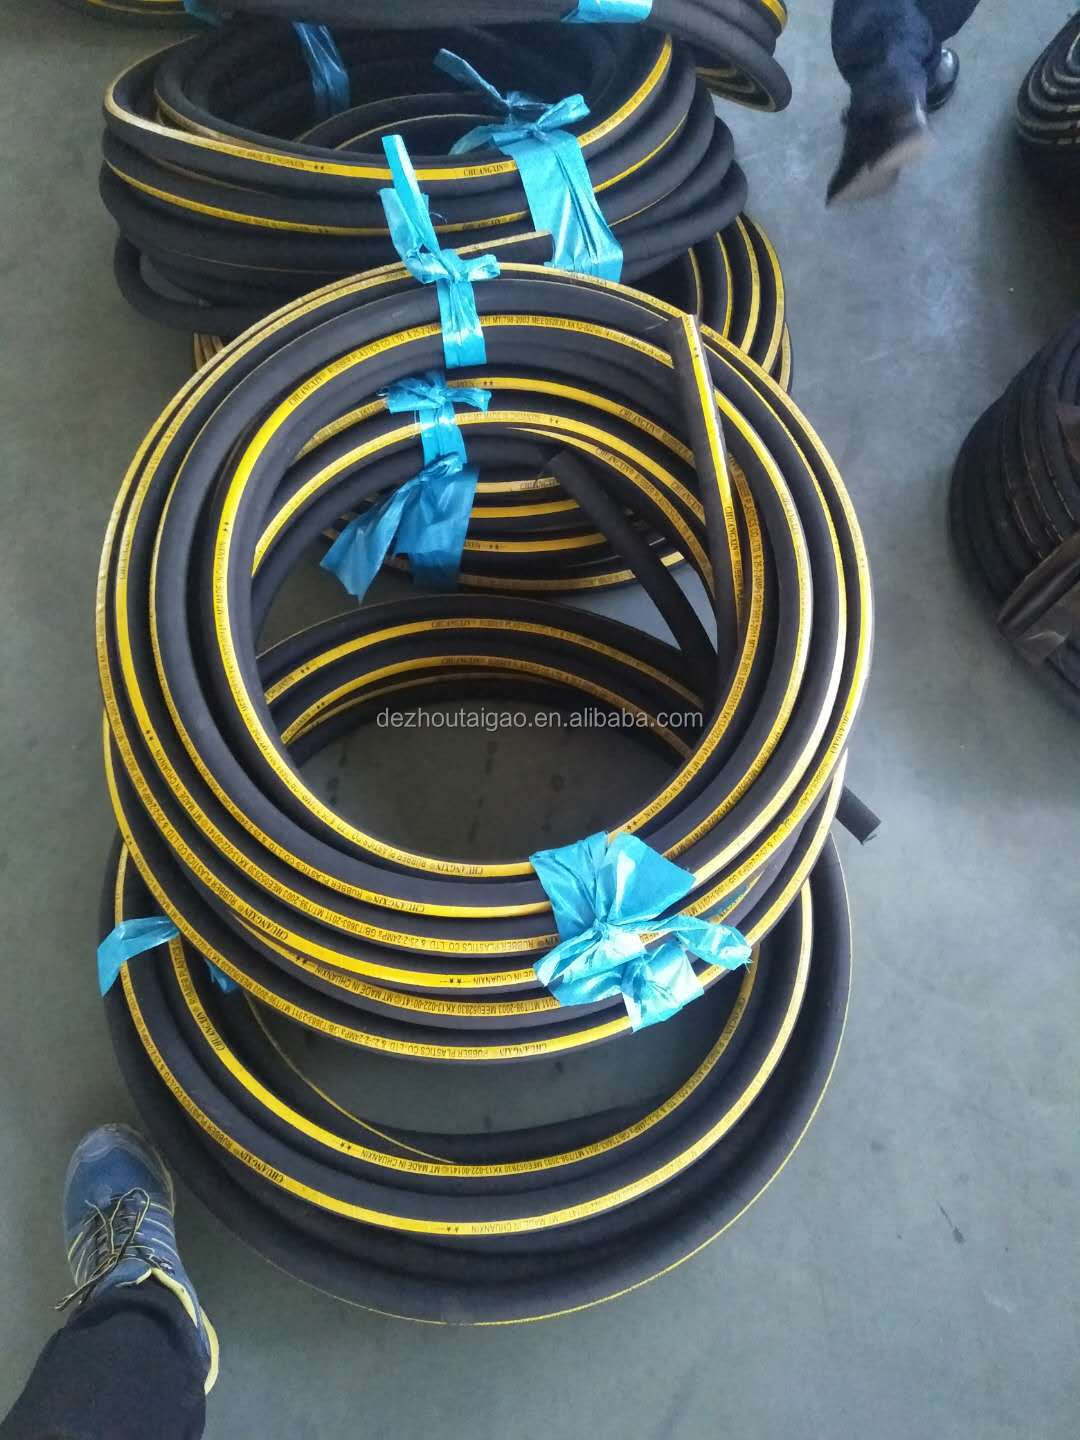 China factory wholesale hydraulic hose and hose assemblies hydraulic hose